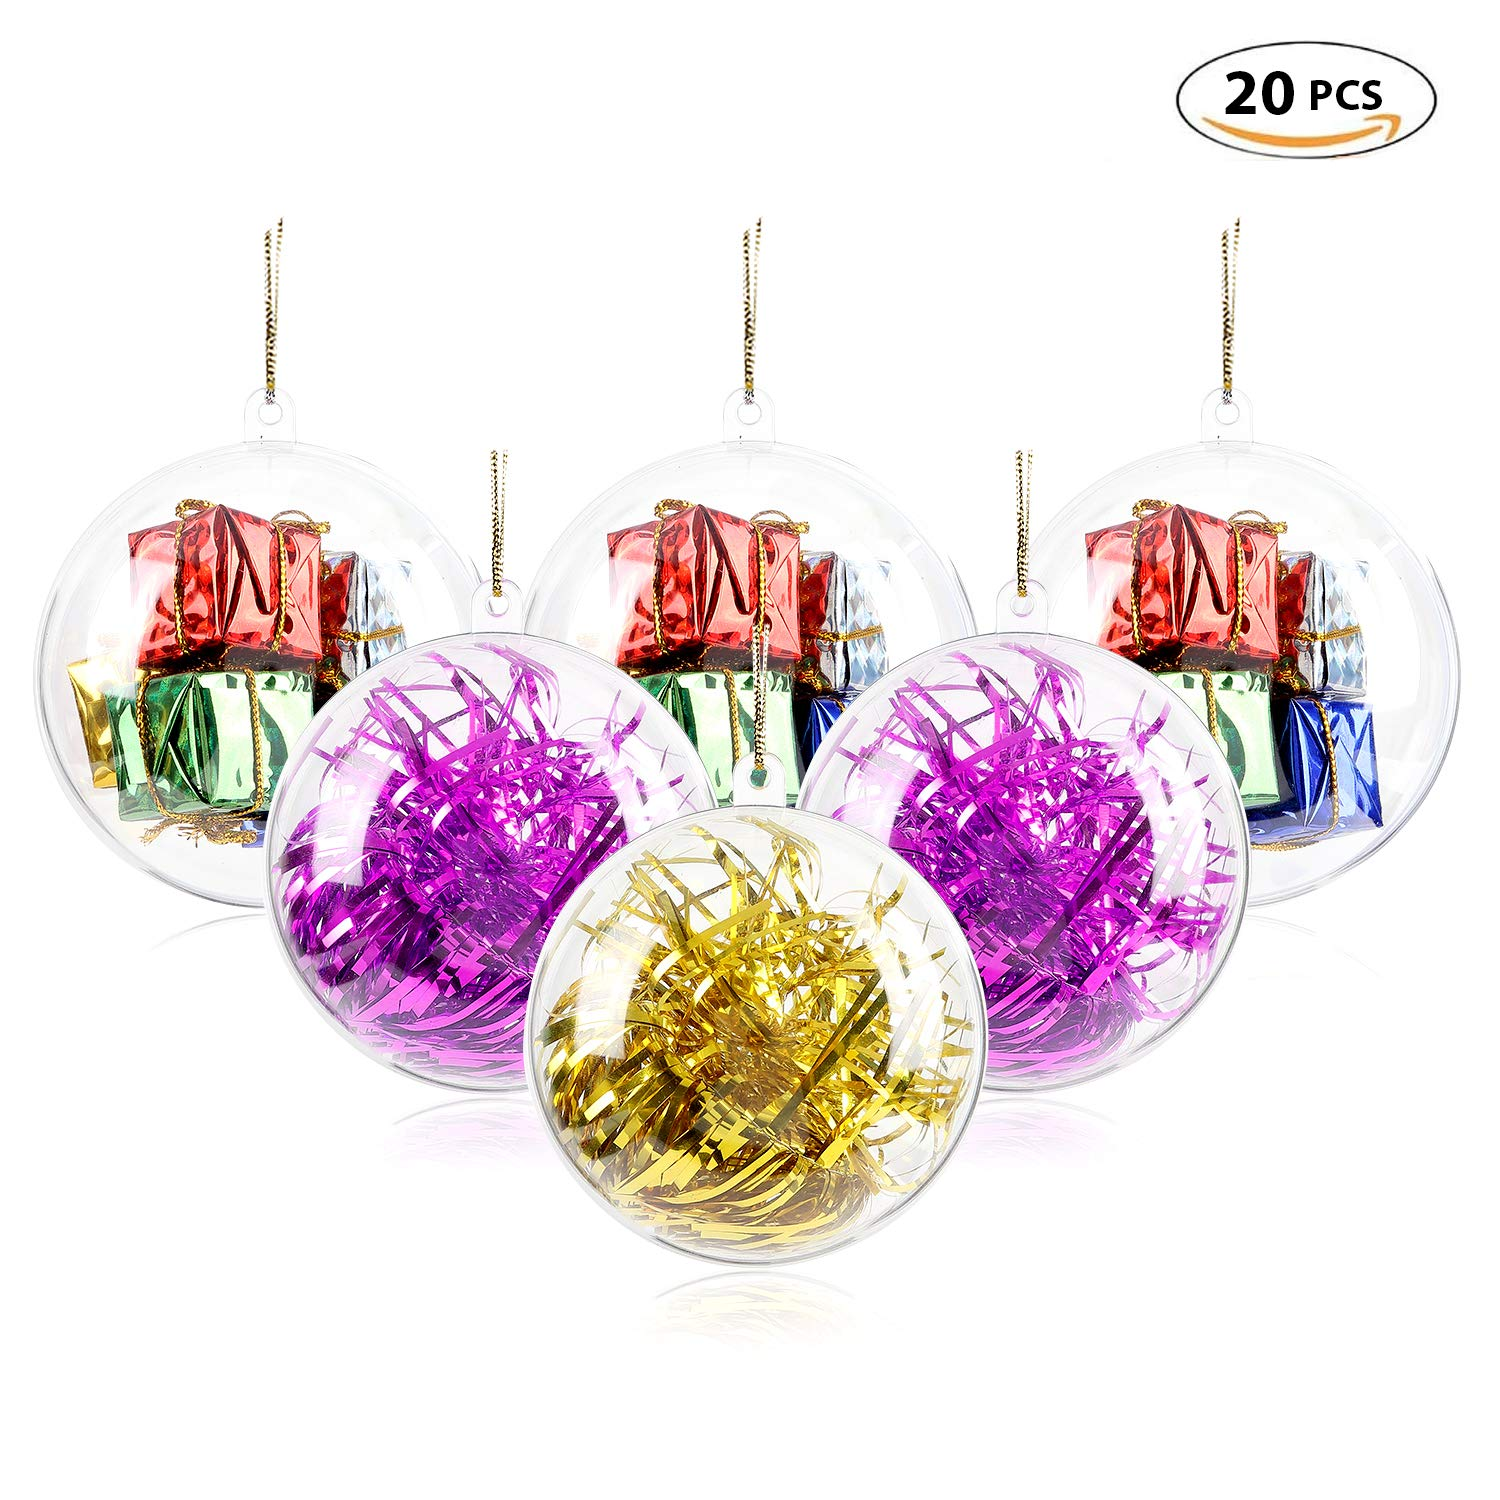 AGM Shatterproof Clear Plastic Christmas Ball Ornaments DIY Fillable Craft Xmas Balls Baubles Set Filled with Artificial Snow Berry Rattan for Winter Theme Tree Decorations, Set of 20 [Diameter: 8cm] AGM EU